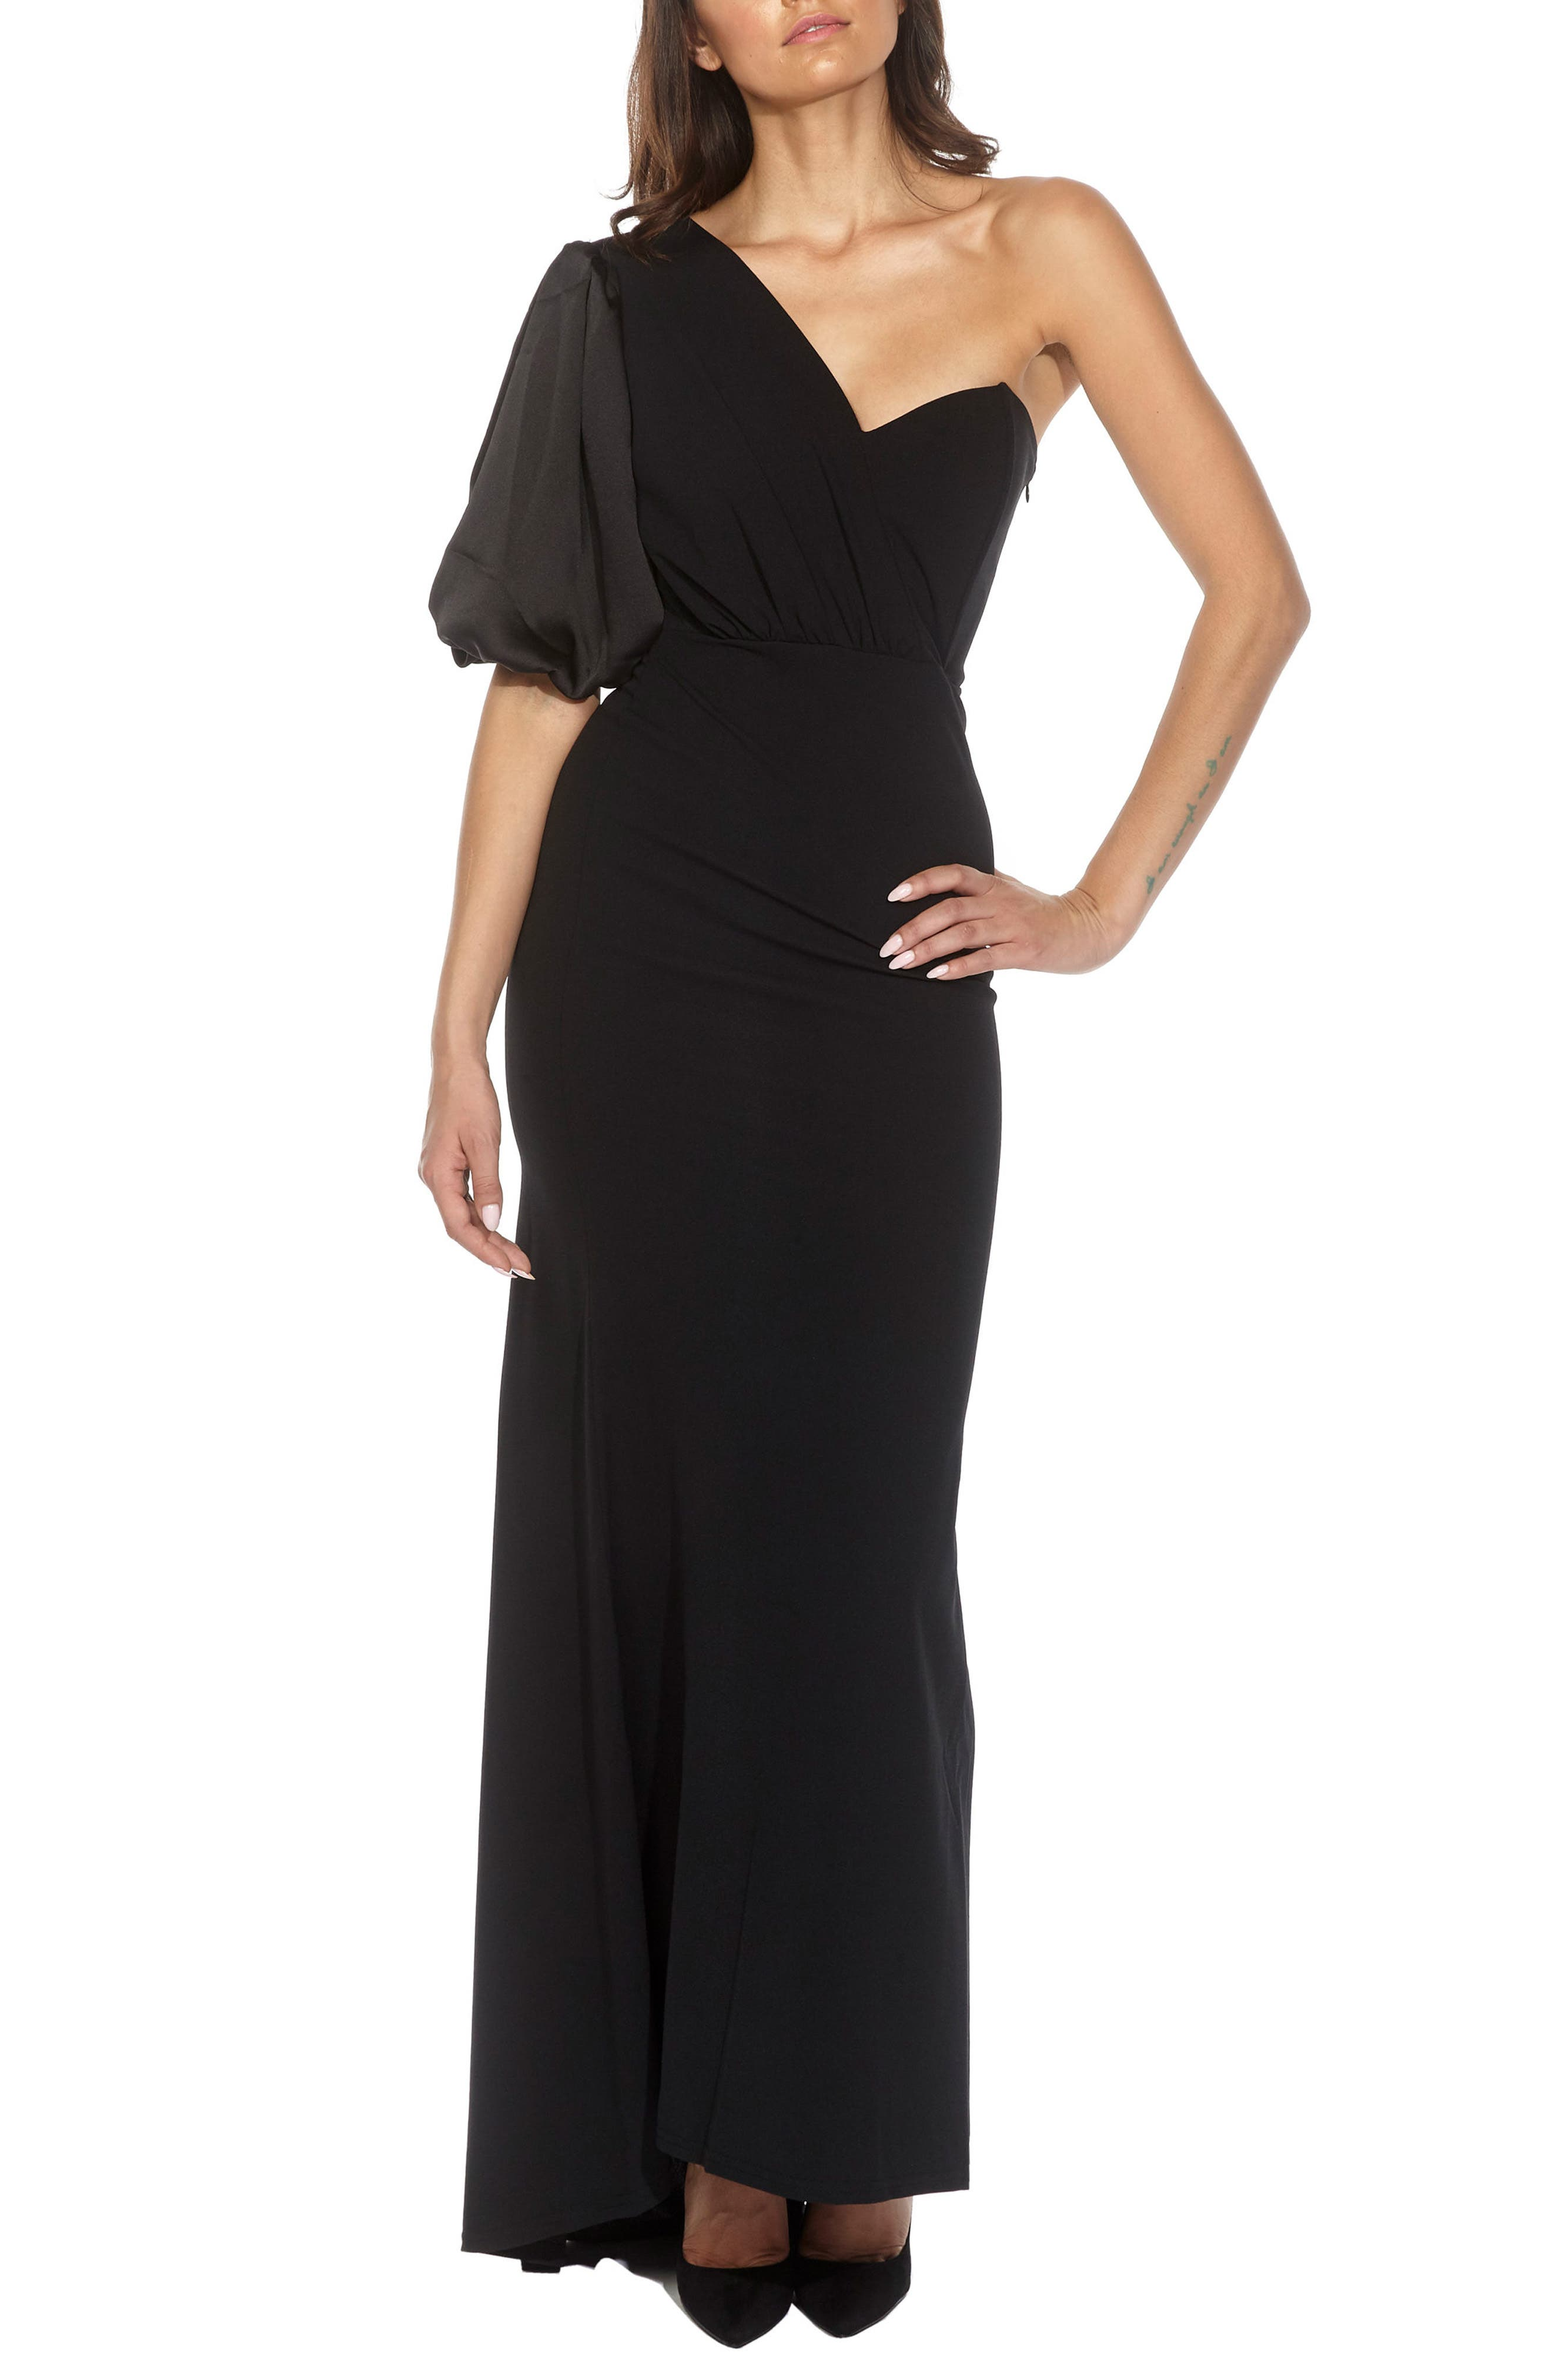 Nawell One-Shoulder Puff Sleeve Gown,                             Main thumbnail 1, color,                             001